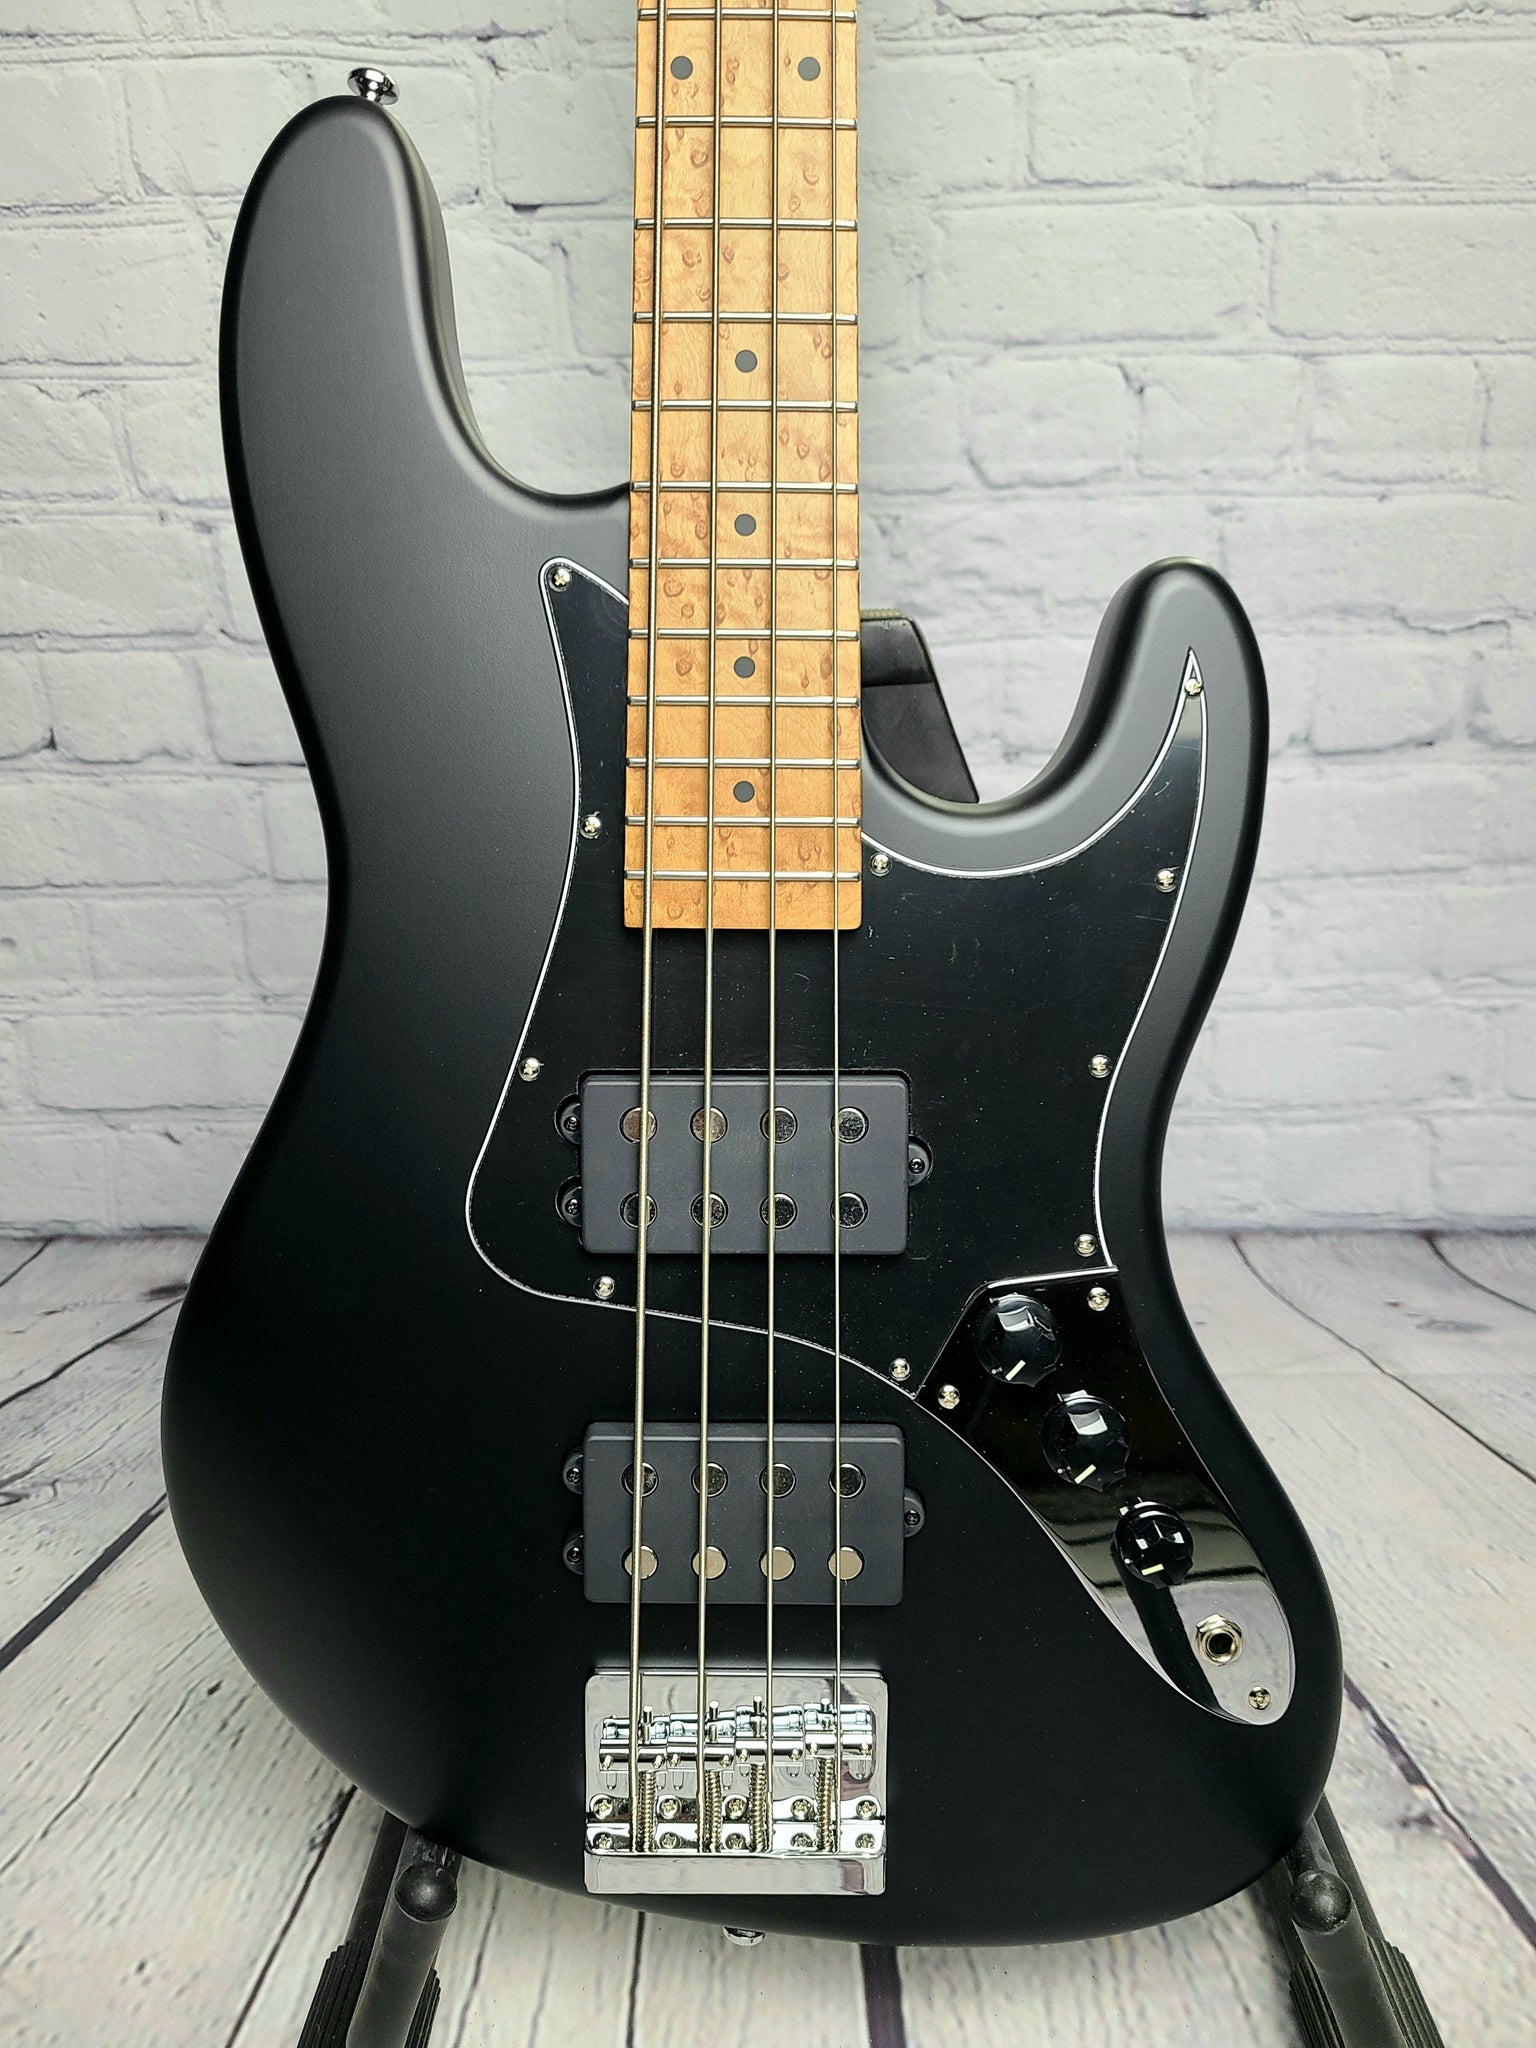 Balaguer Goliath Bass - Satin Black w/Roasted Maple Neck